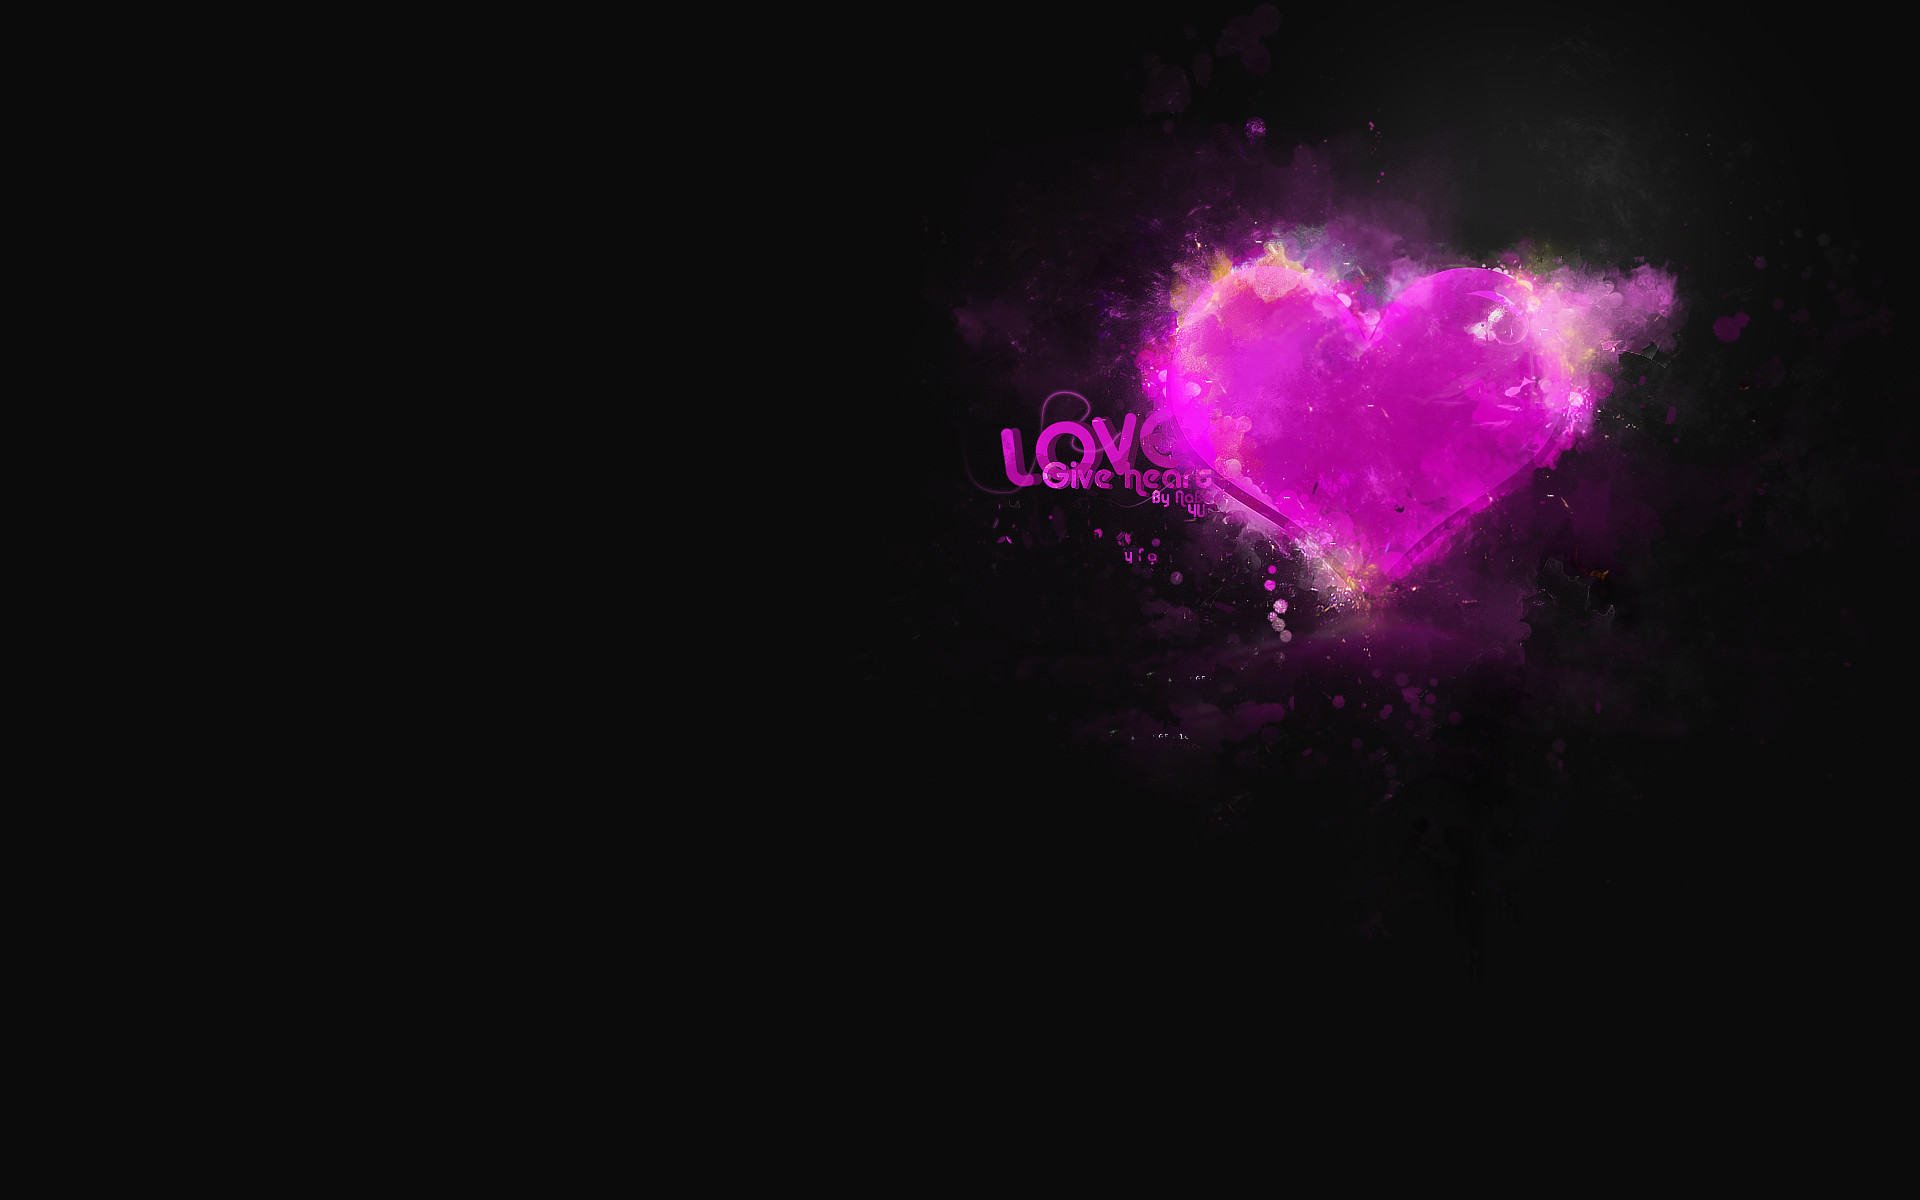 1920x1200 Love Background Black - HDWallie - HD Wallpapers